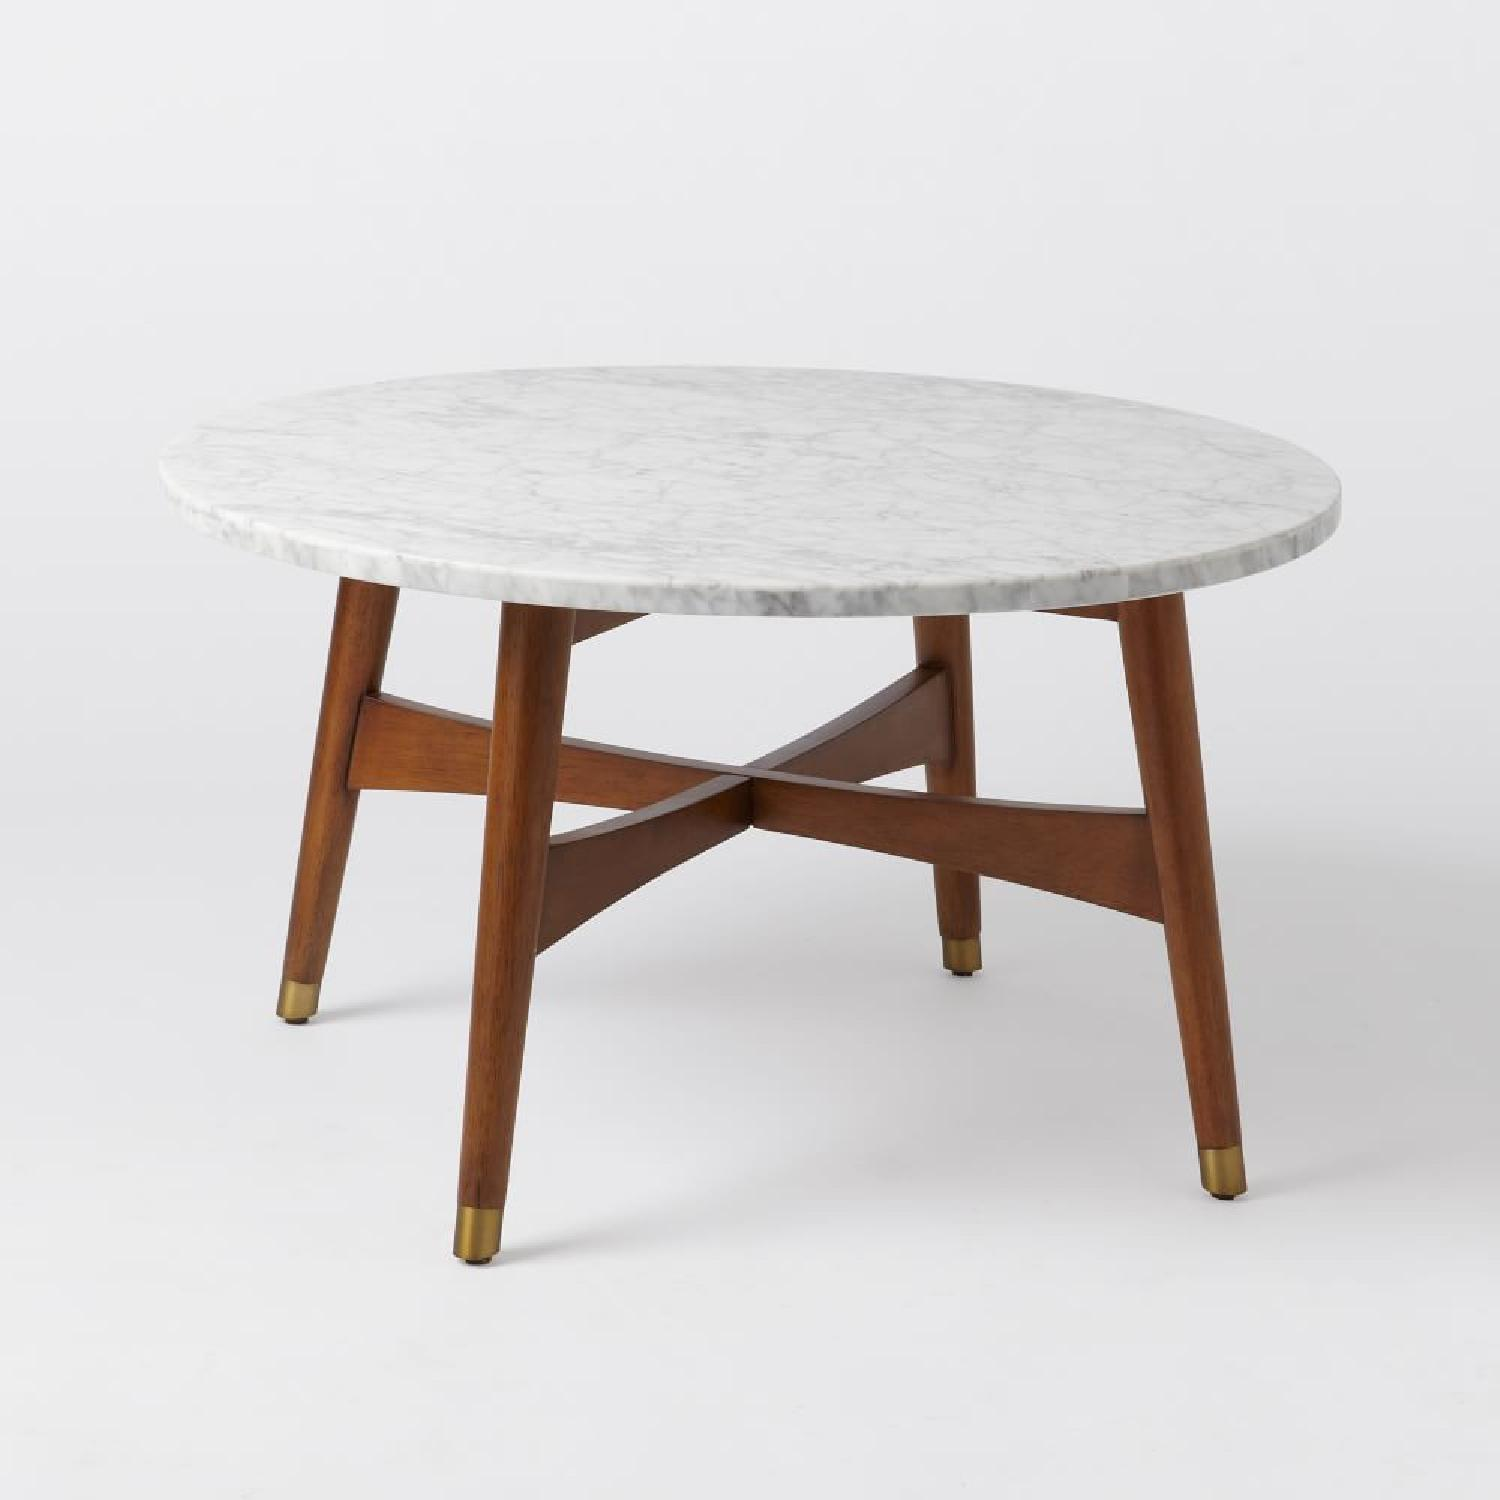 West Elm Reeve Dining Table - image-4